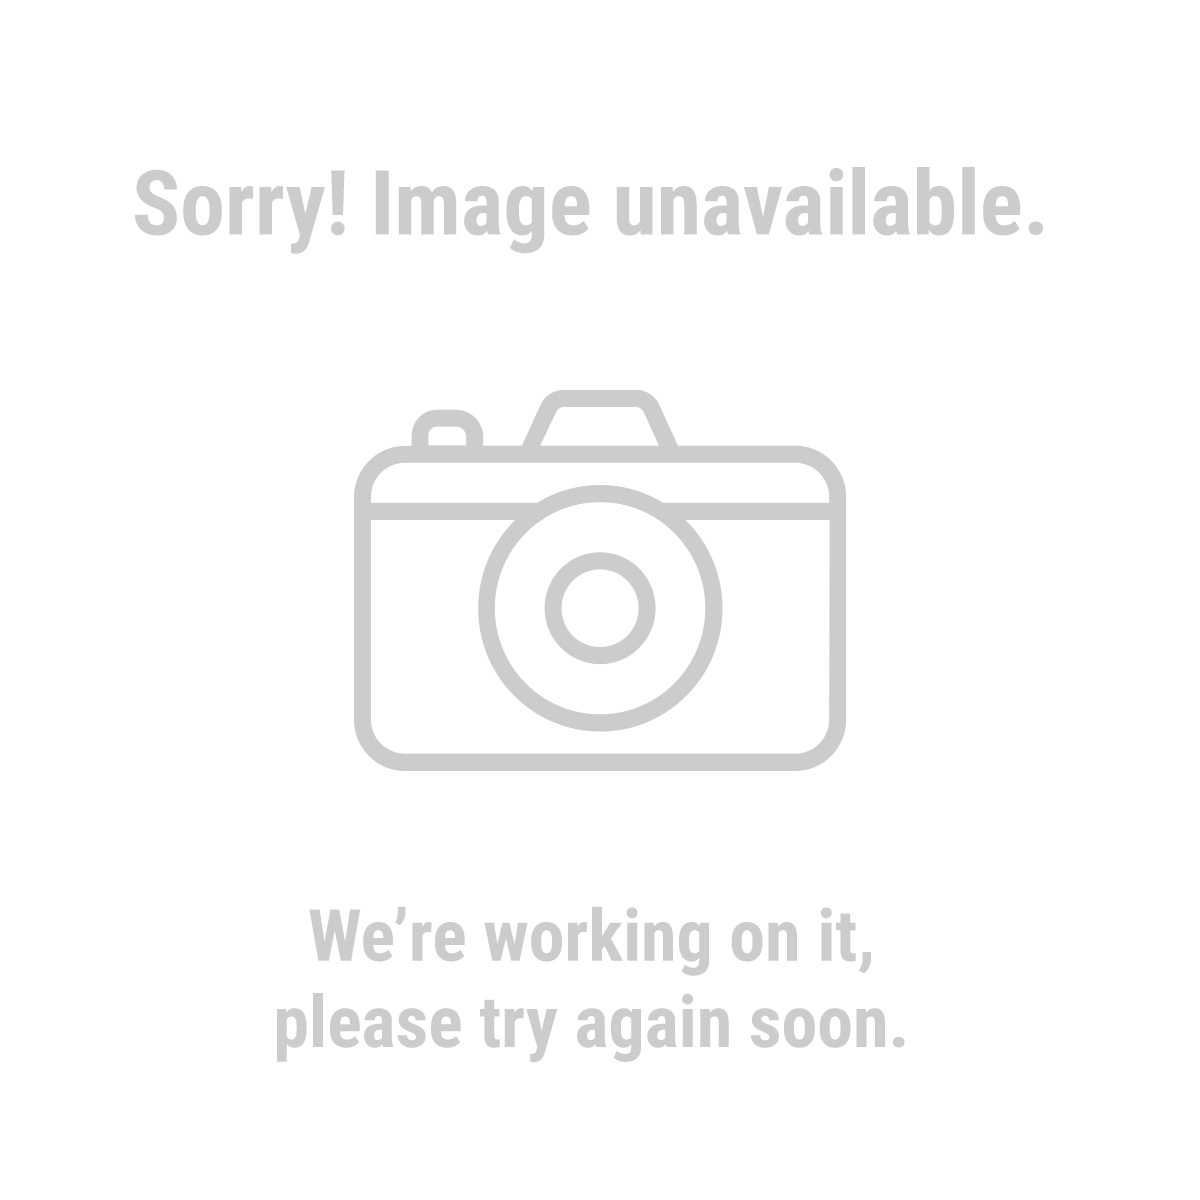 HARDY 61775 7 mil Nitrile Powder-Free Gloves 50 Pc Medium